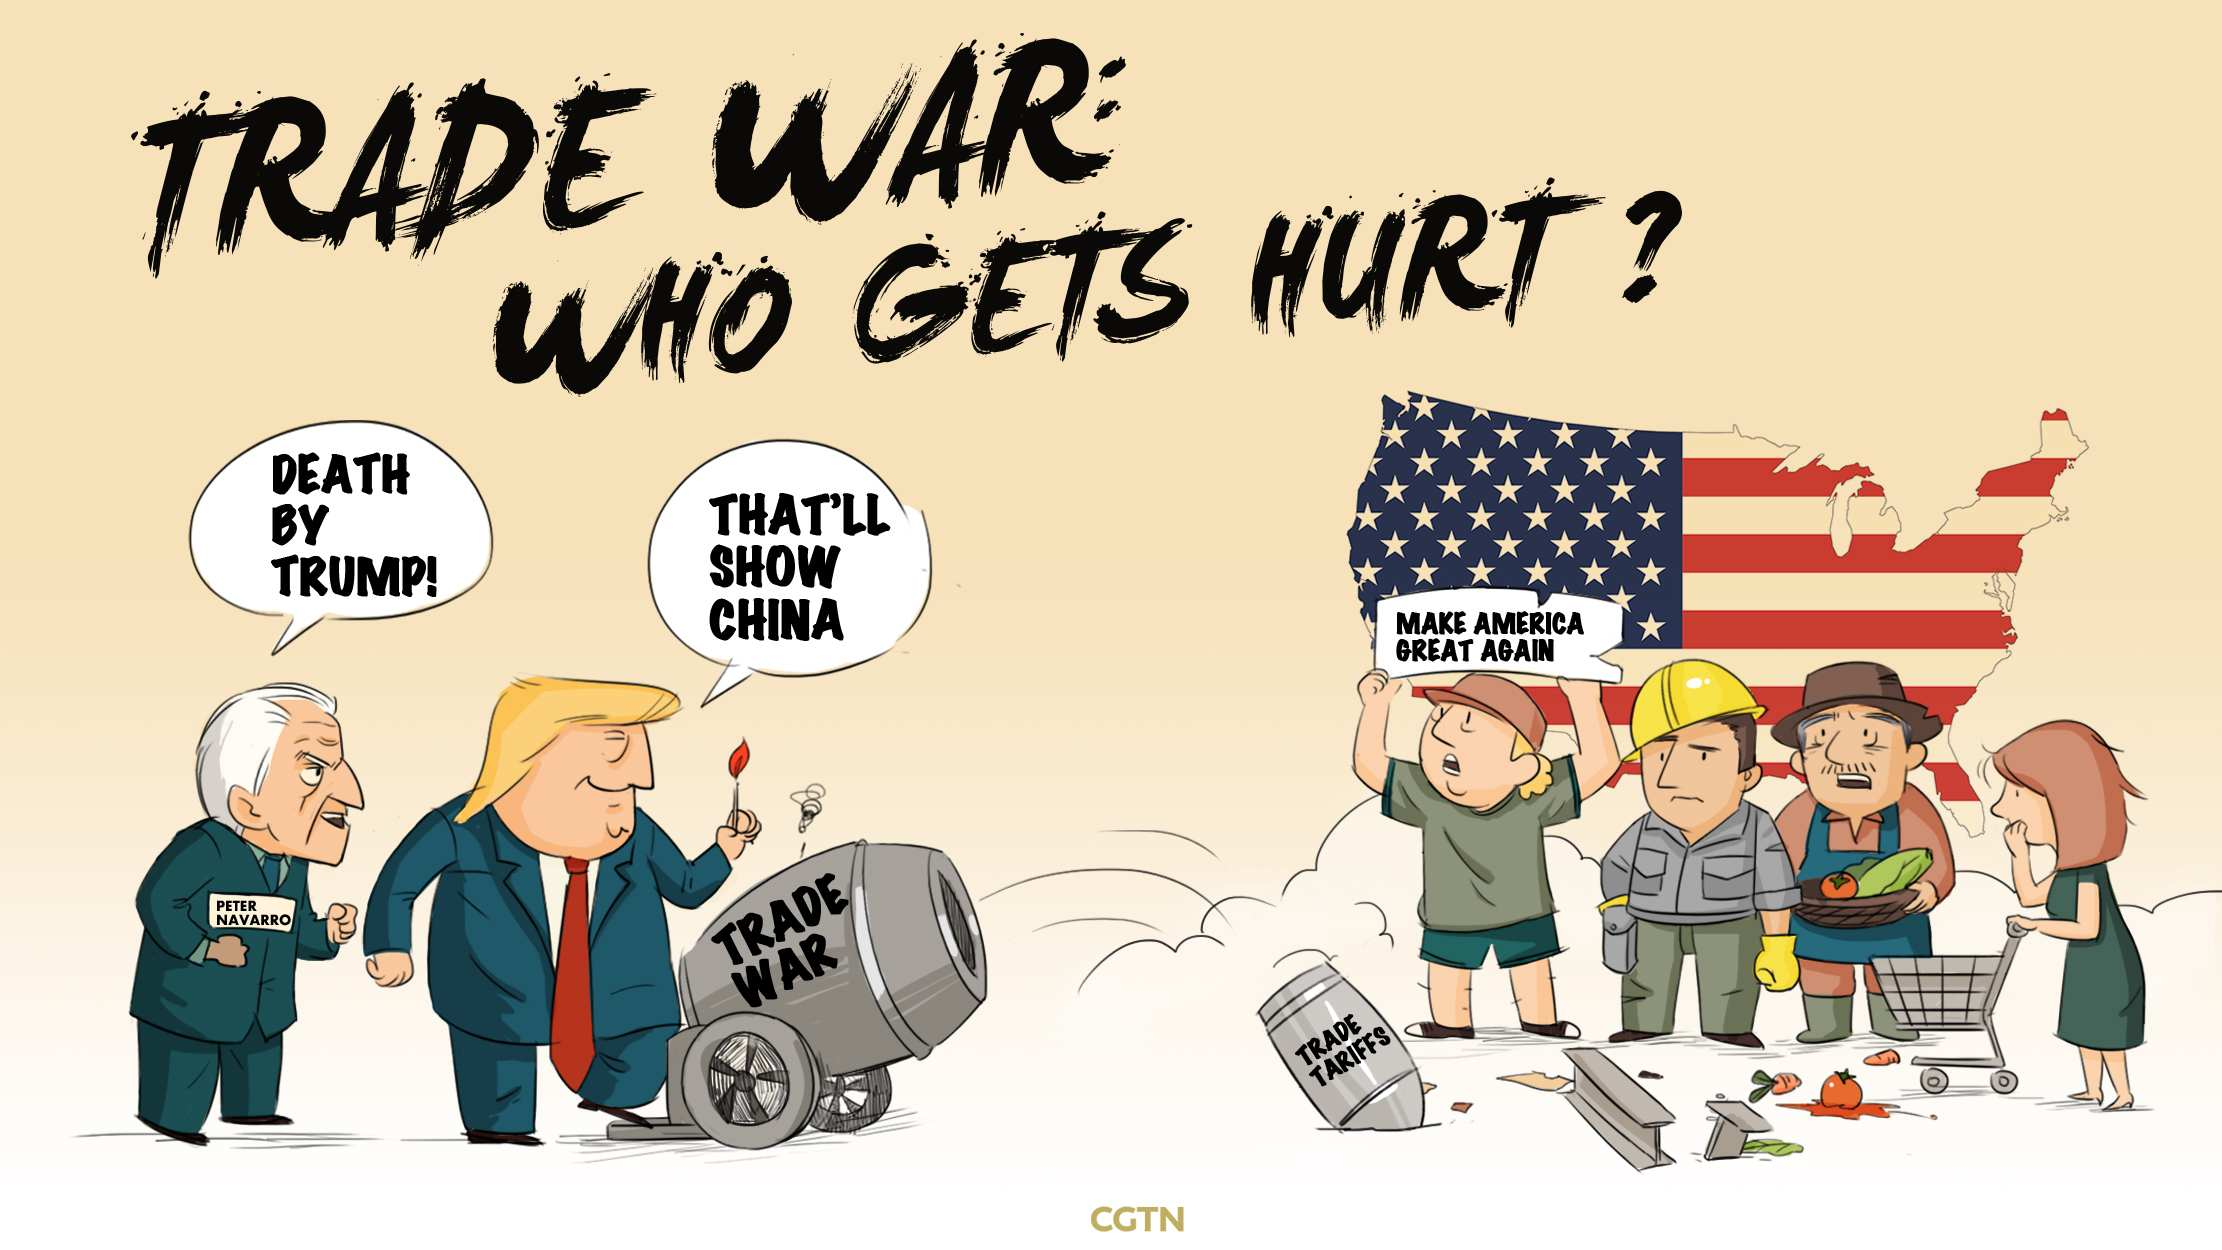 Who gets hurt when trade wars break out?